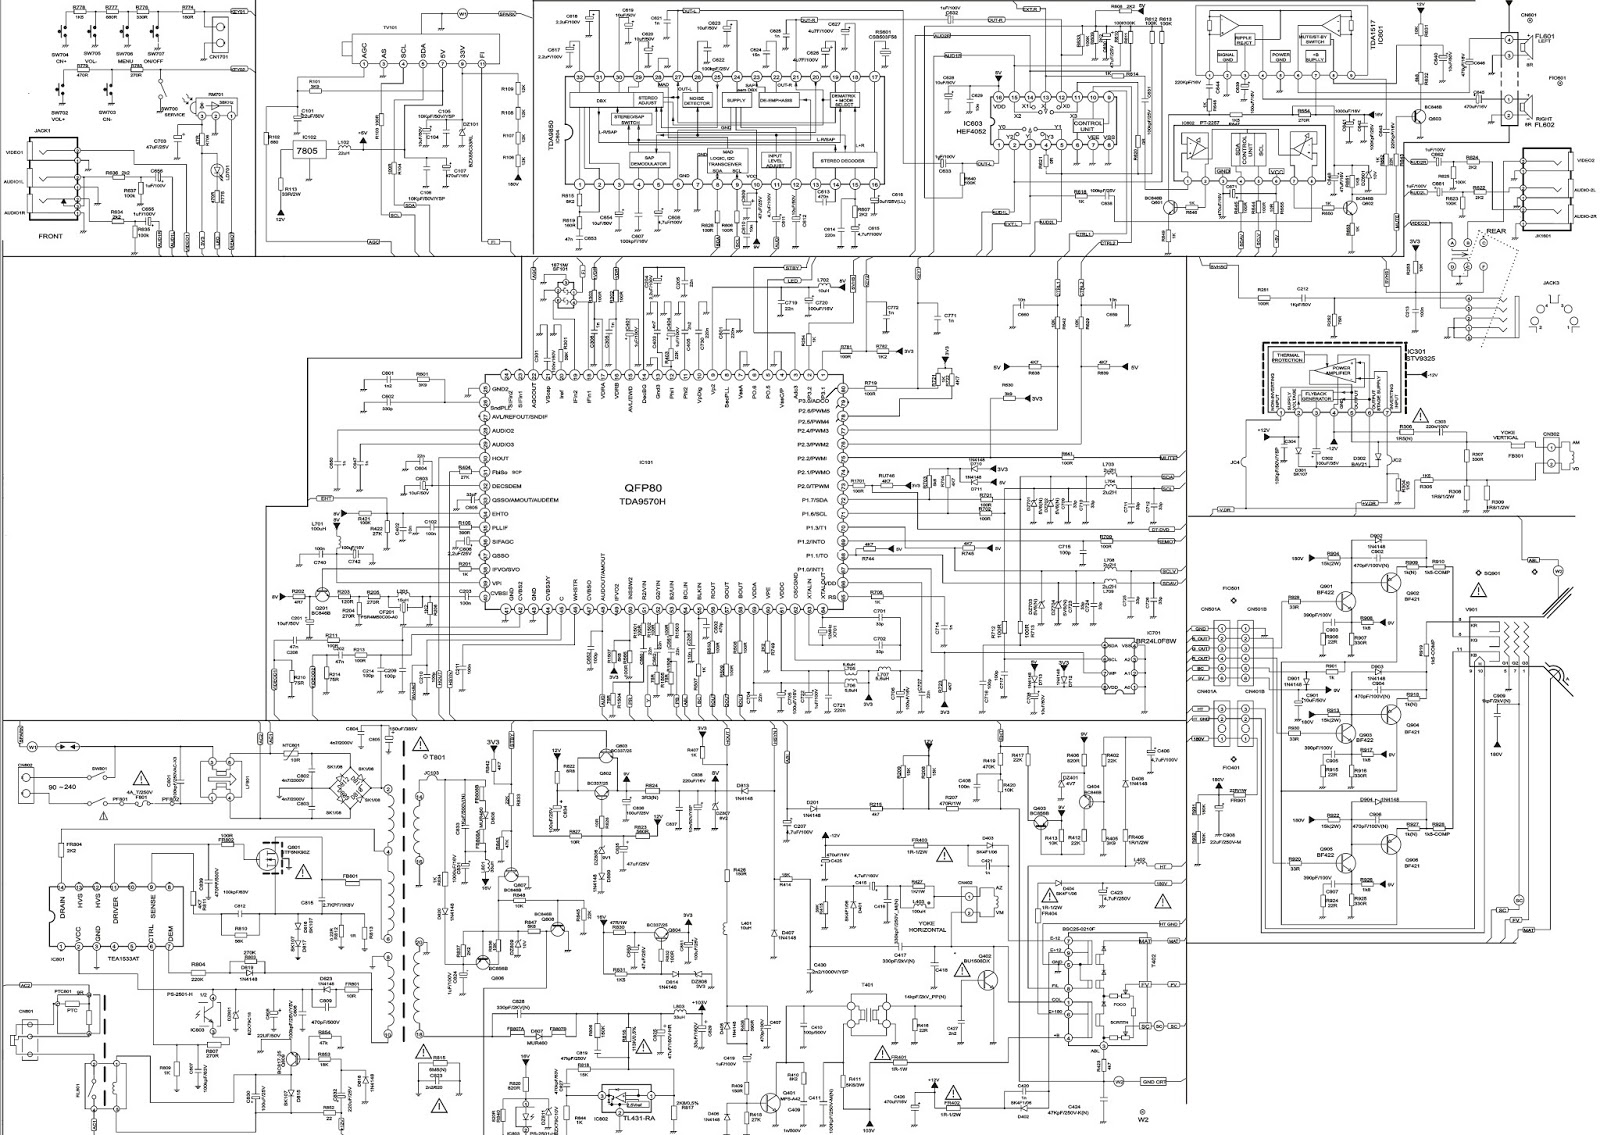 hight resolution of crt tv circuit diagram wiring diagrams crt tv structure crt tv power diagram